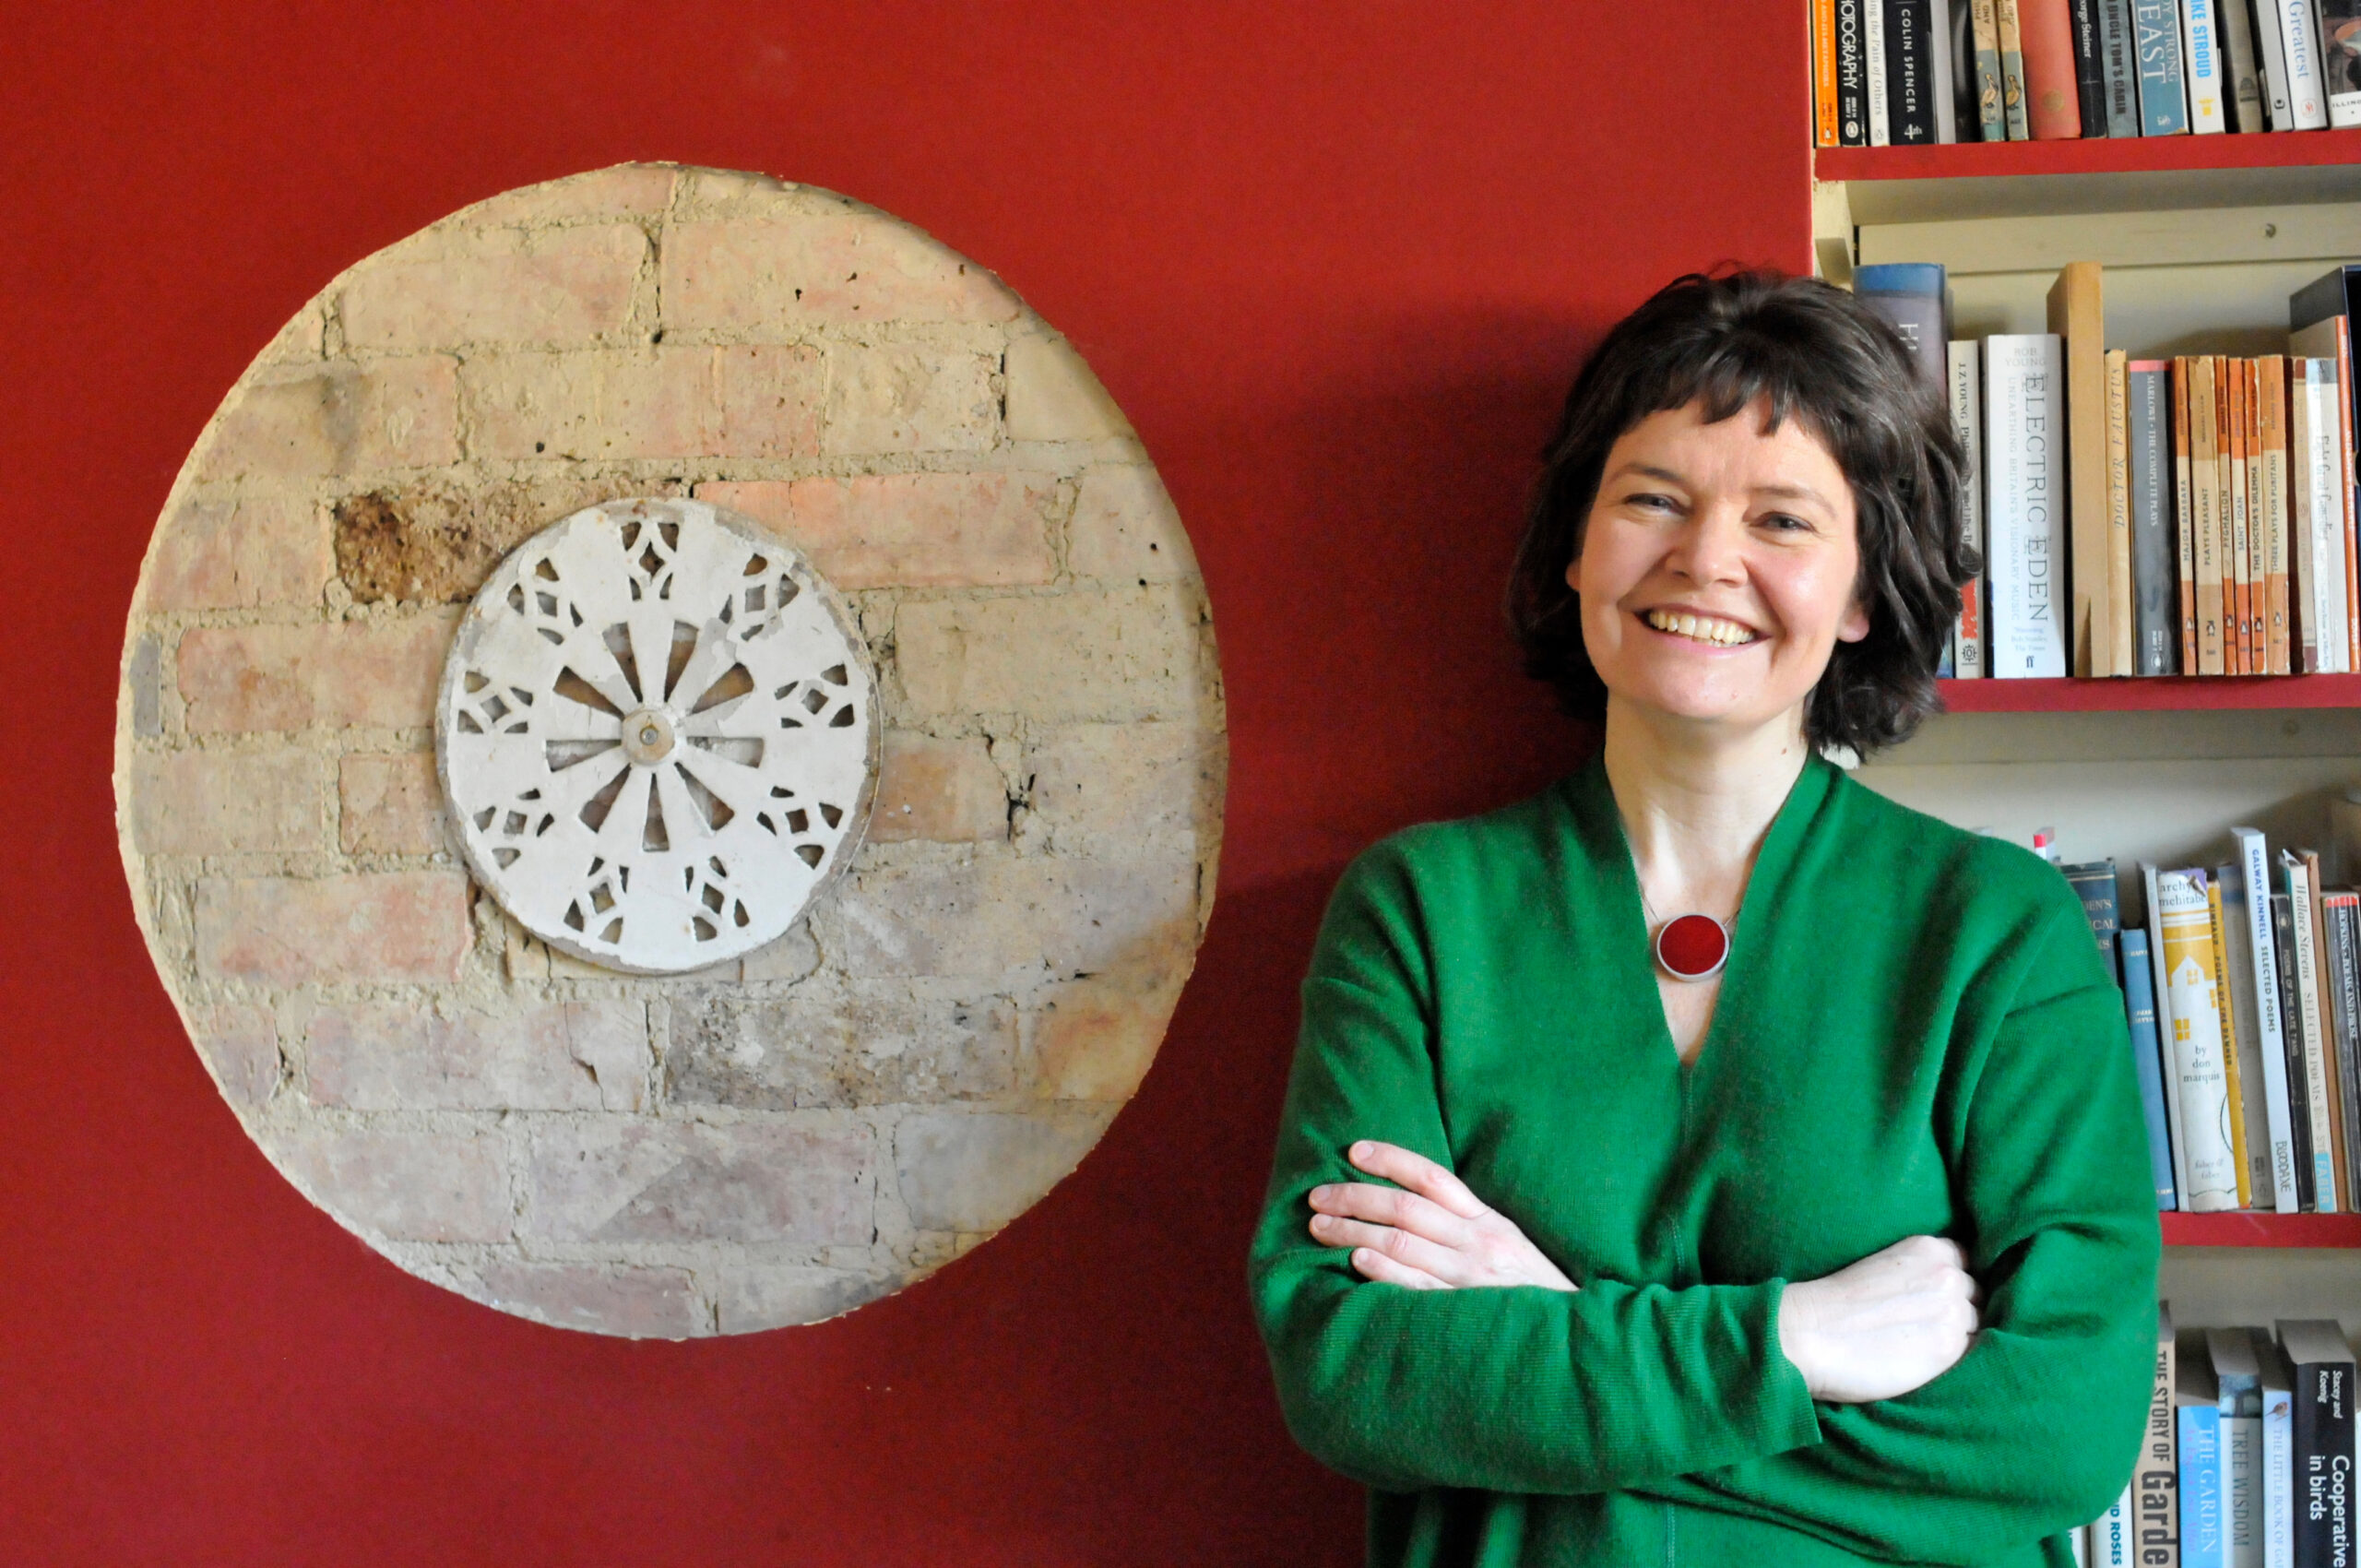 OCF Conversation #01: Rethinking Economics For The 21st Century with Kate Raworth